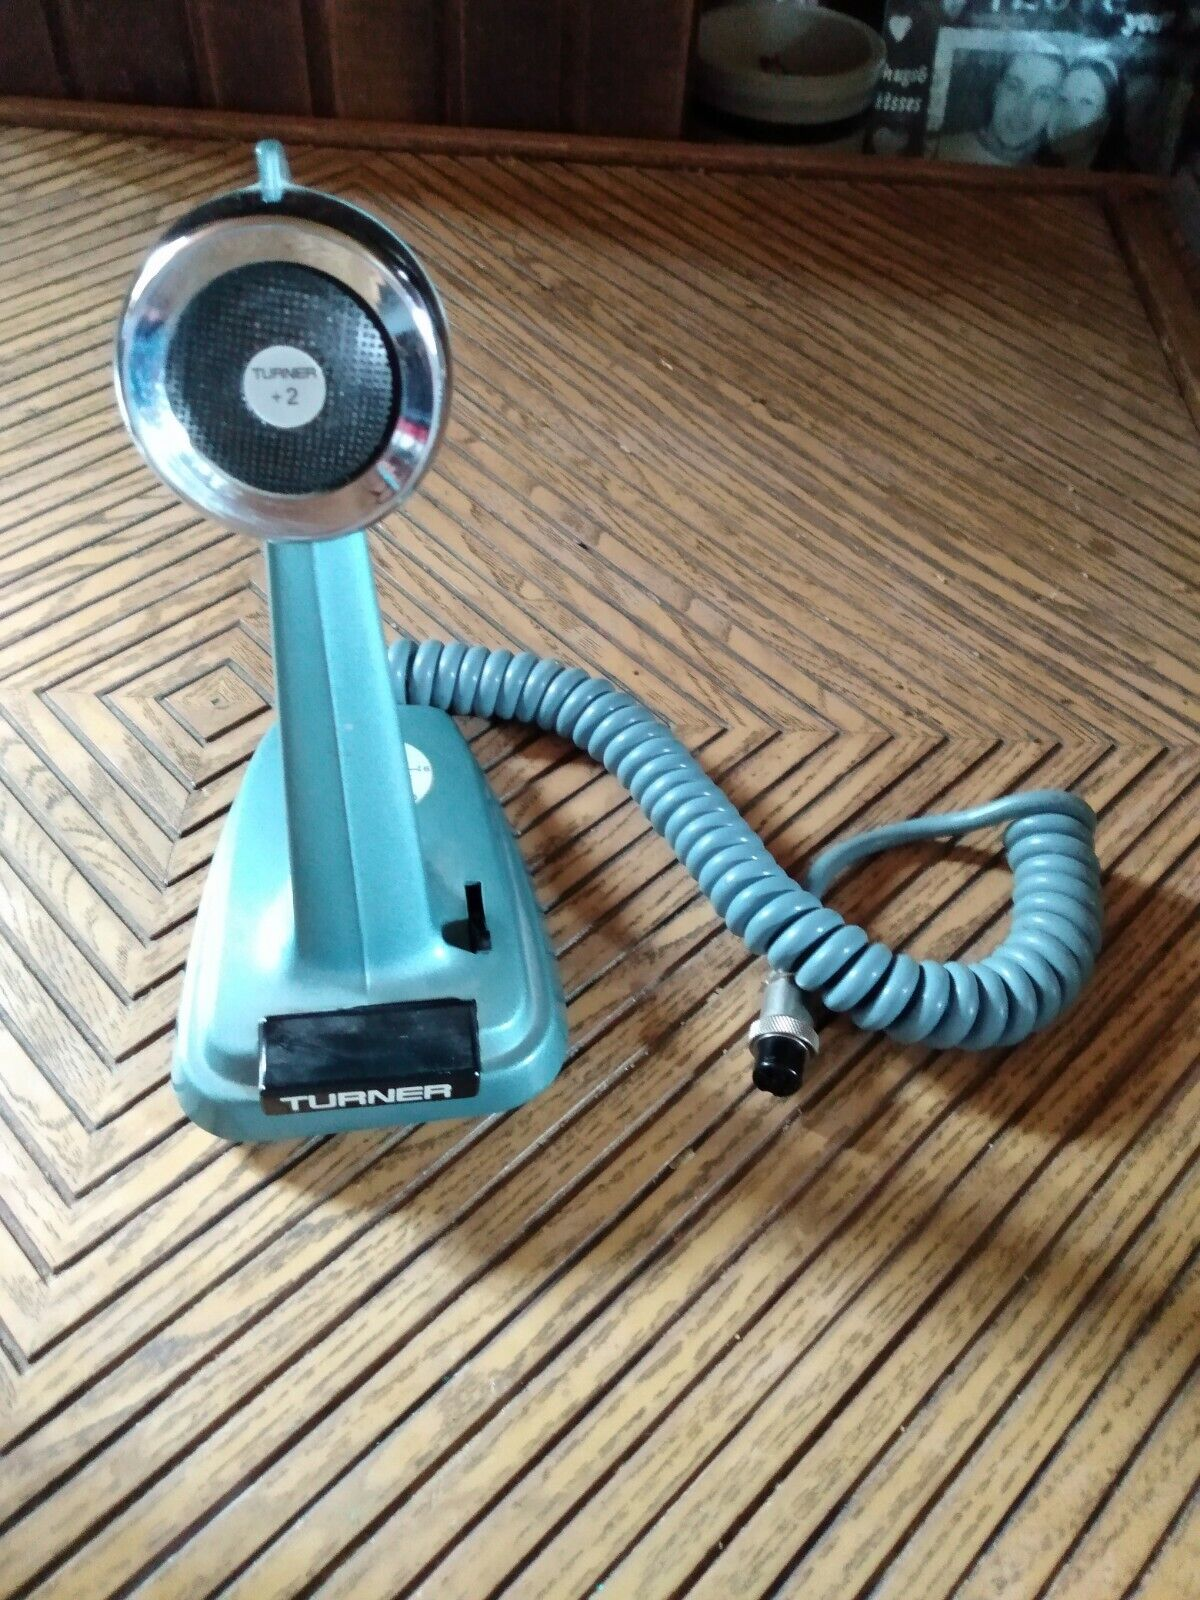 Turner +2 Microphone/ working condition / Fast Shipping tested working. Available Now for 140.80